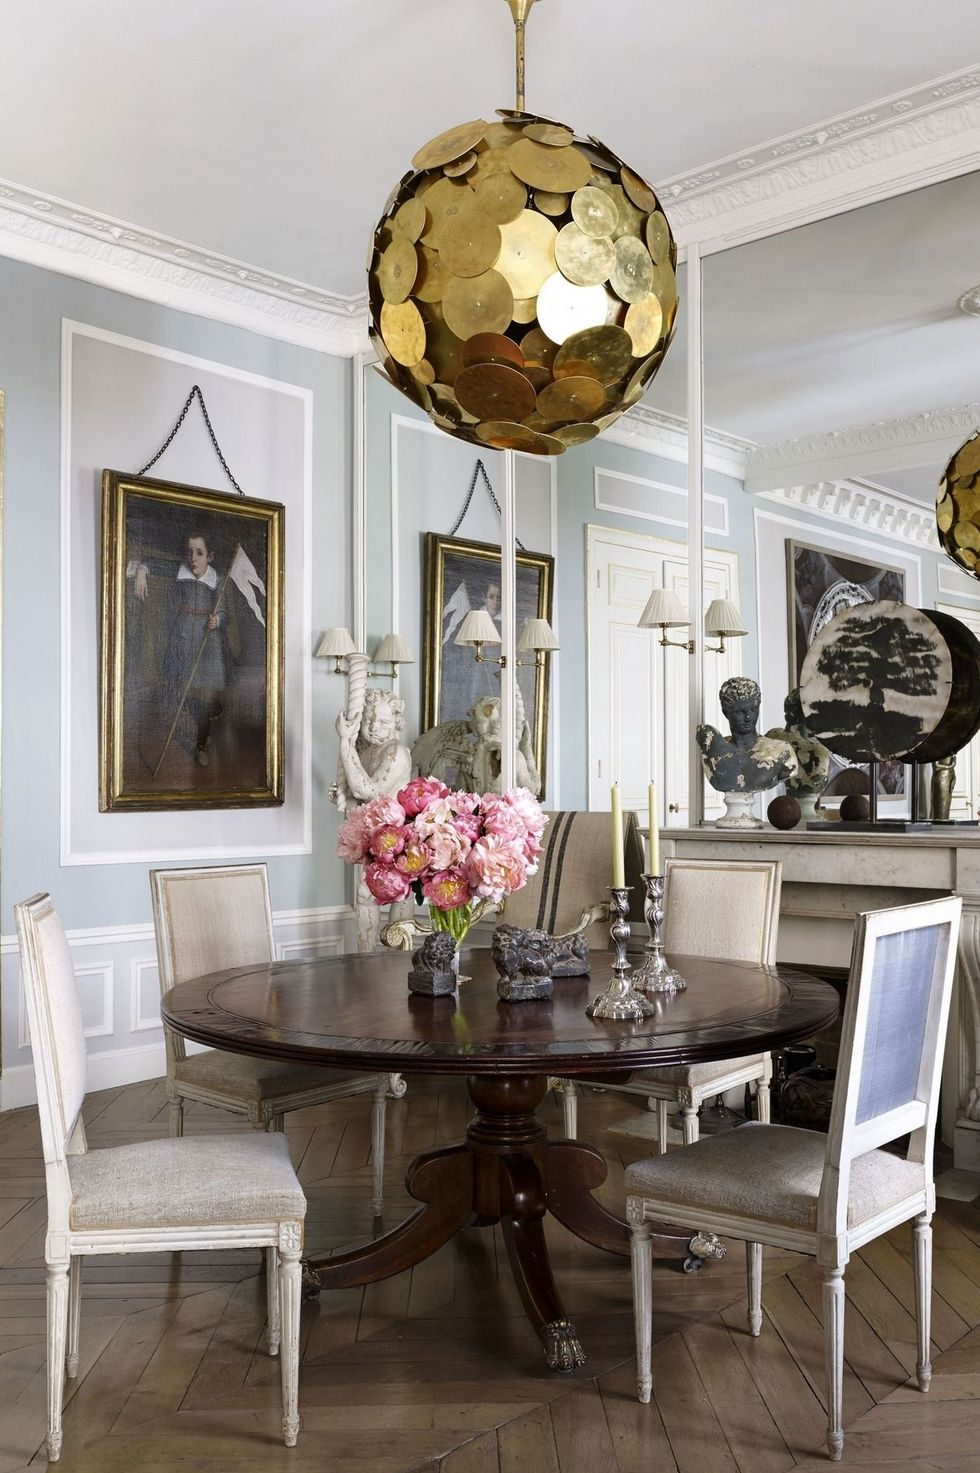 Mdinning-room-light-fixtures-1-1502211541